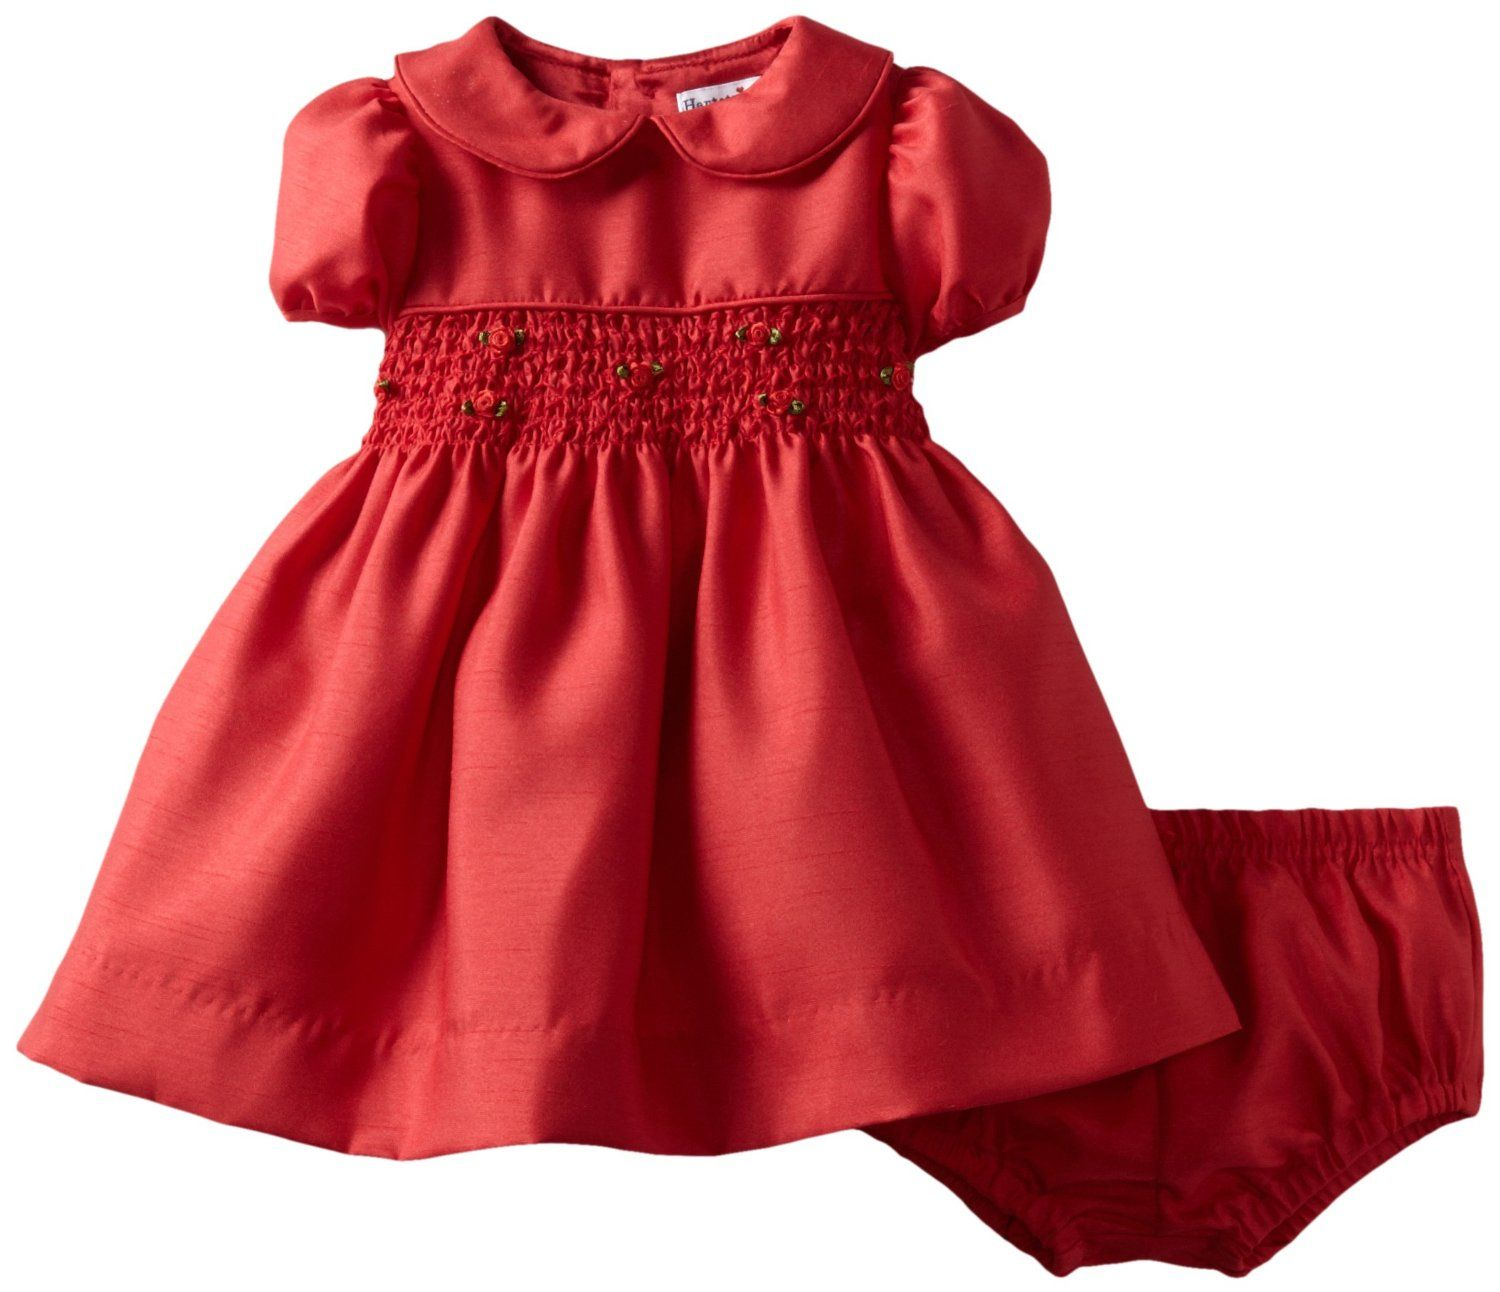 4b1d42ee32e Amazon.com  Hartstrings Baby-Girls Newborn Shantung Smocked Dress And  Diaper Cover Set  Clothing